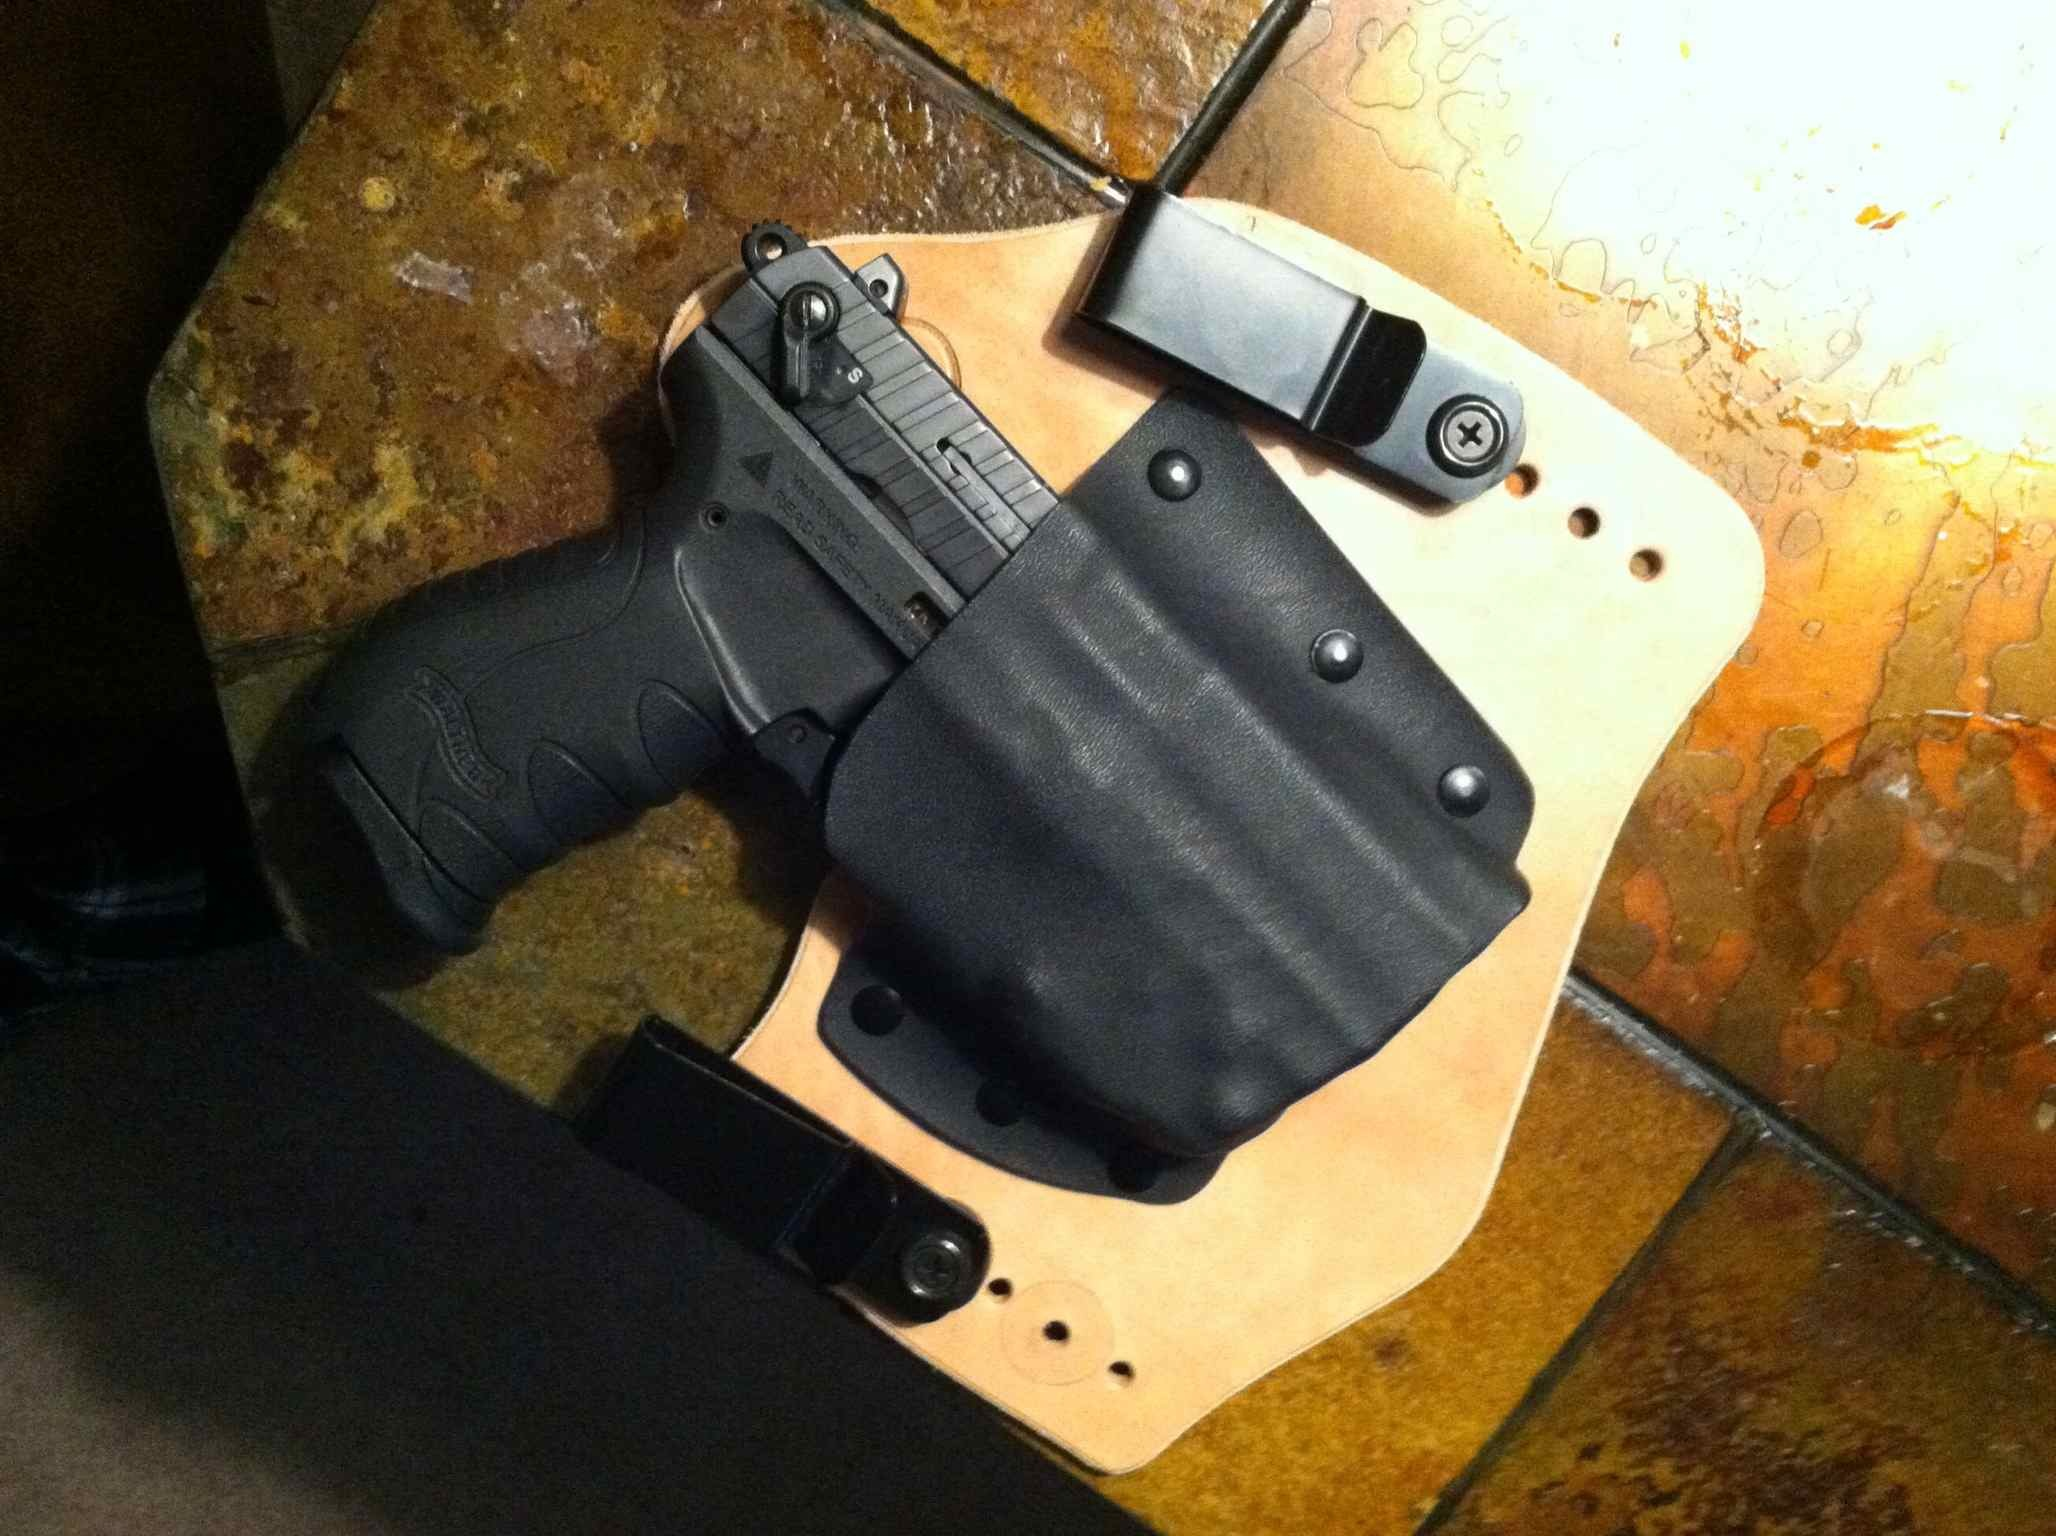 Walther PK380 Holster with laser-imageuploadedbytapatalk-hd1359428032.059083.jpg